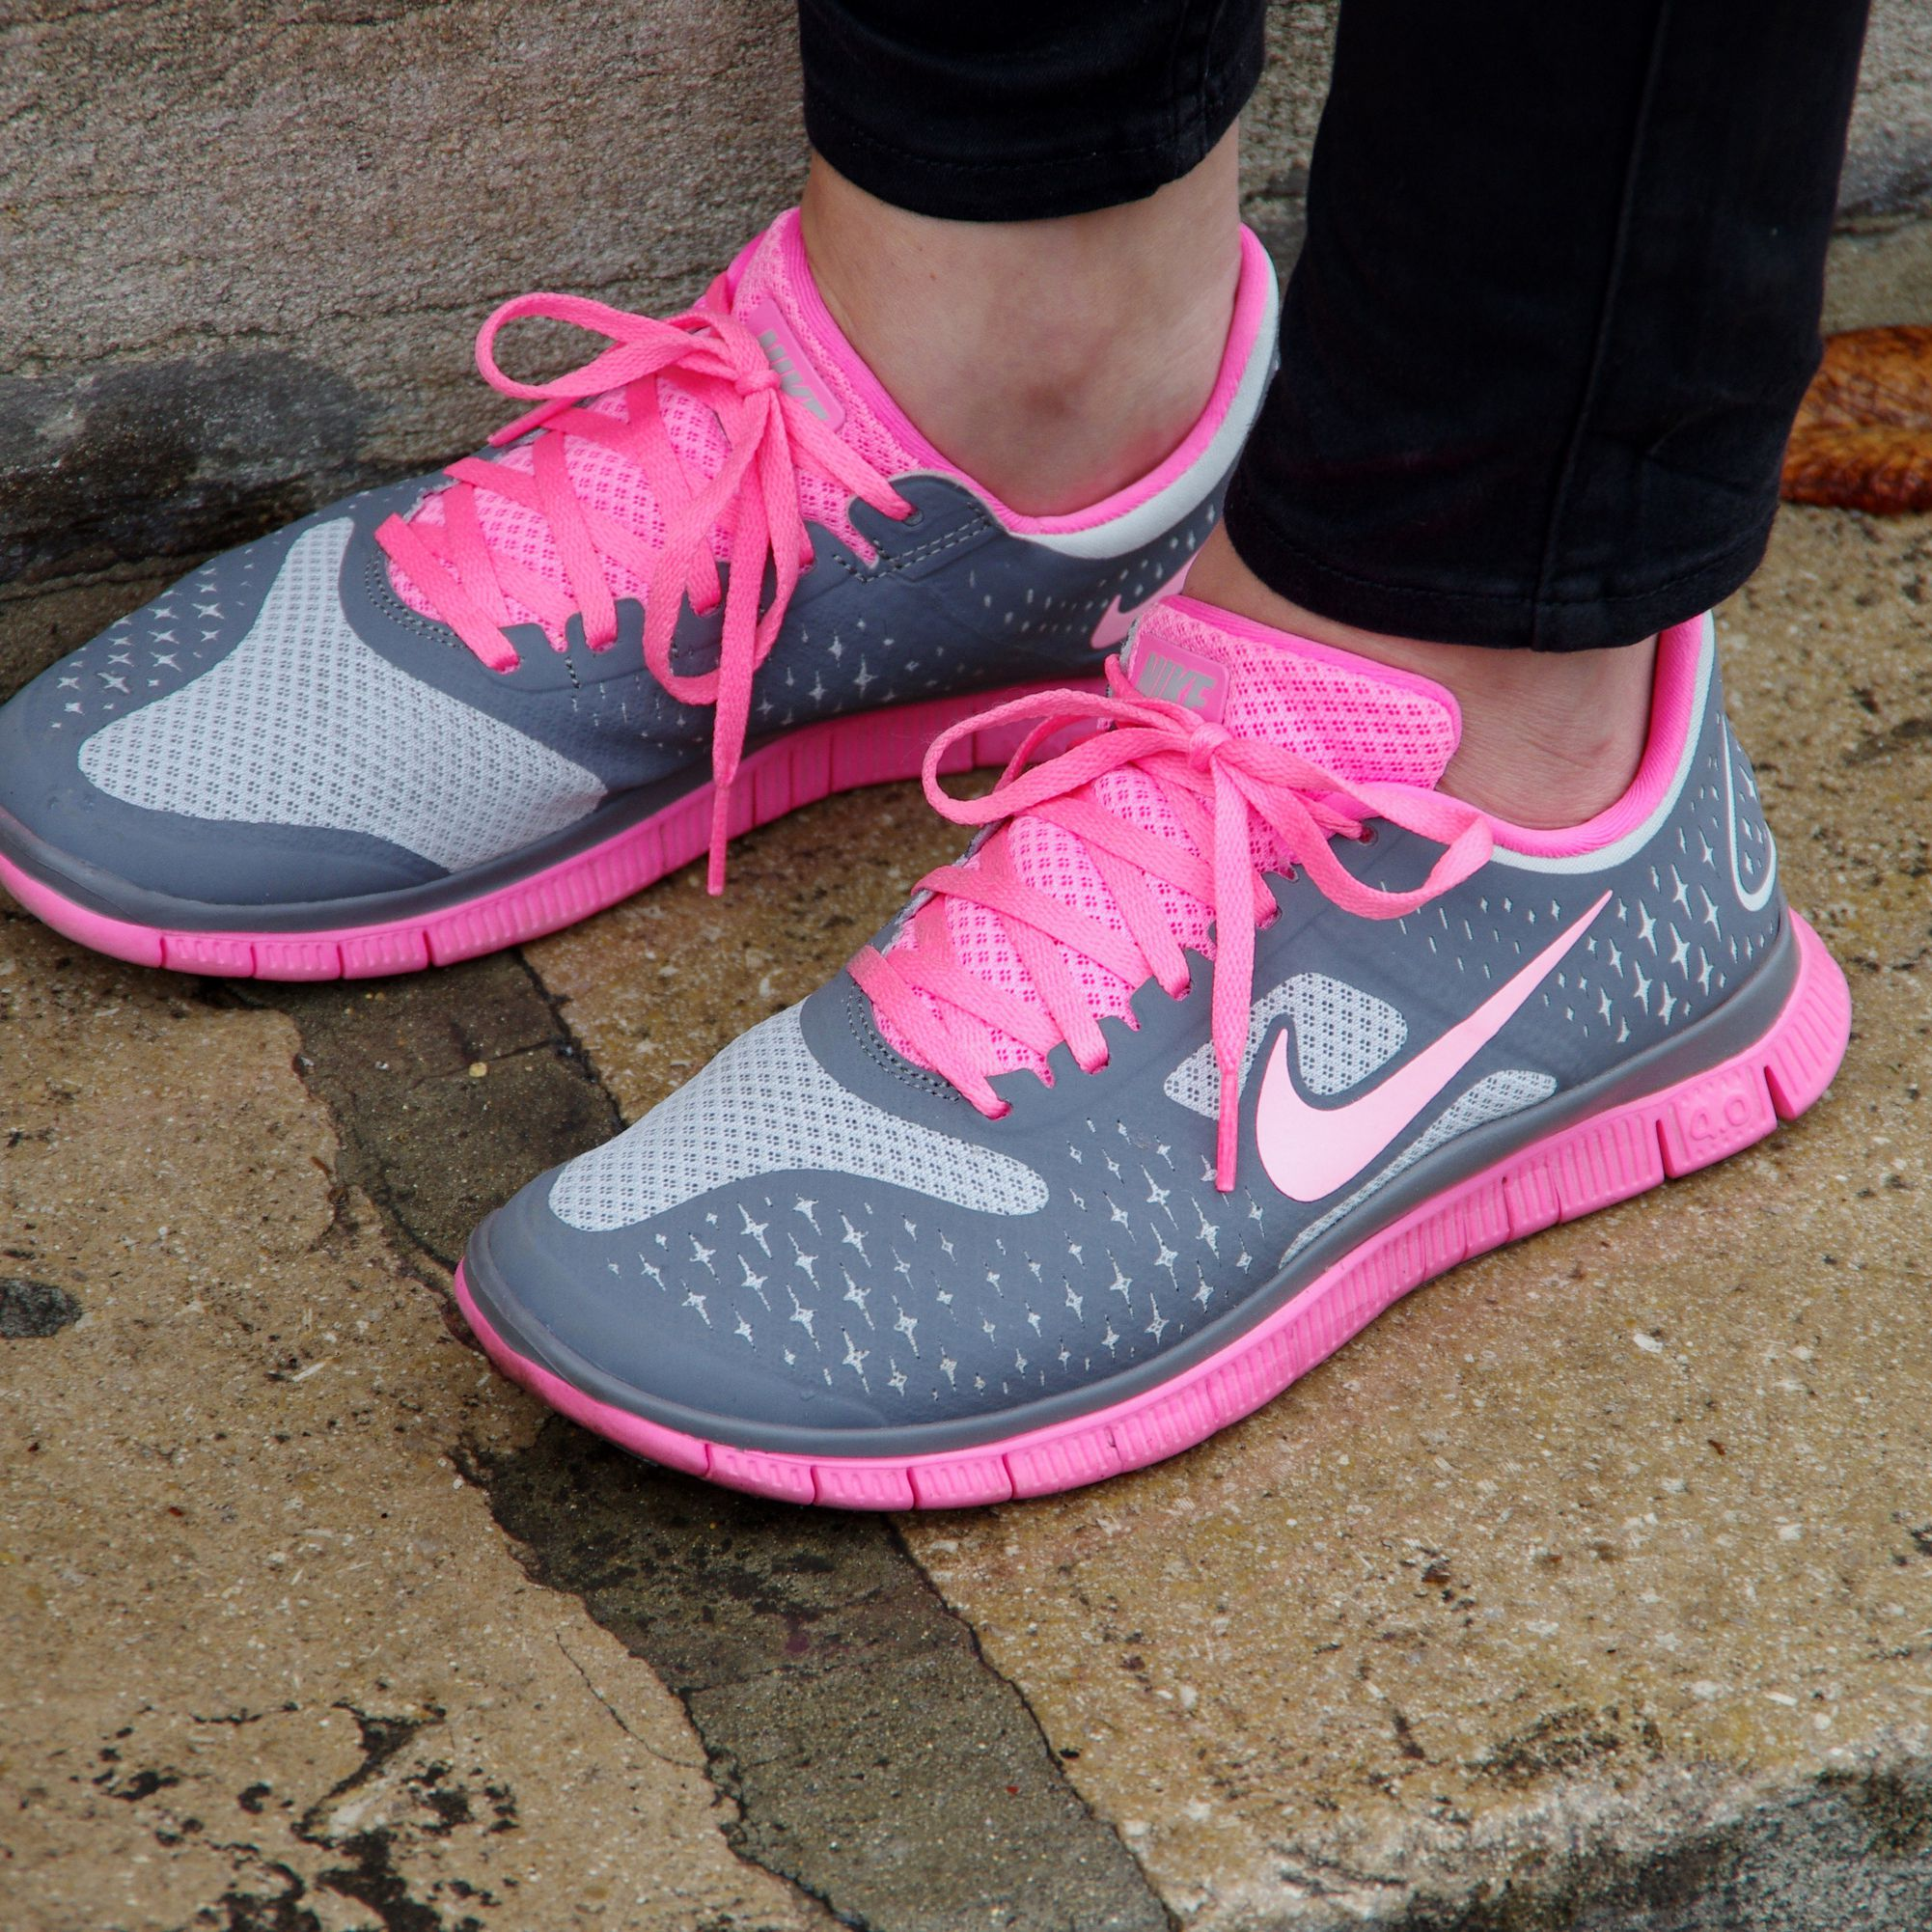 buy popular 411dc a763e Nike Free Shoe Review of Fit, Flexibility, and More